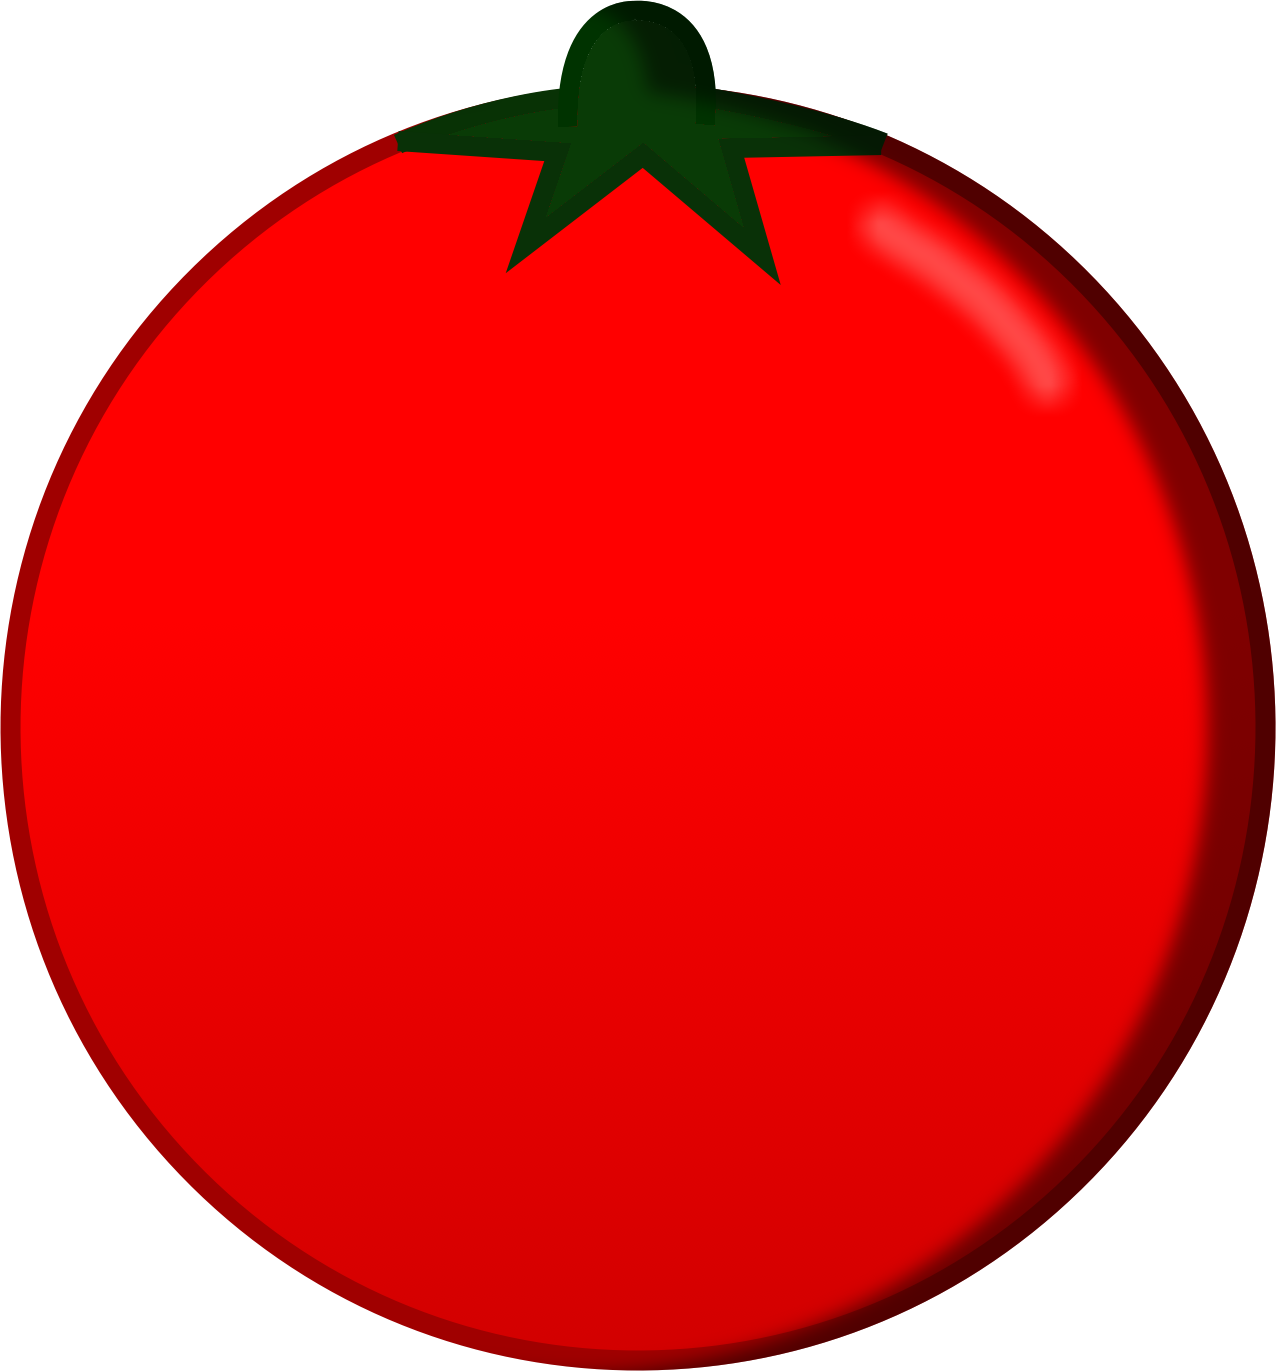 Berry clipart red object. Image sjj png shows